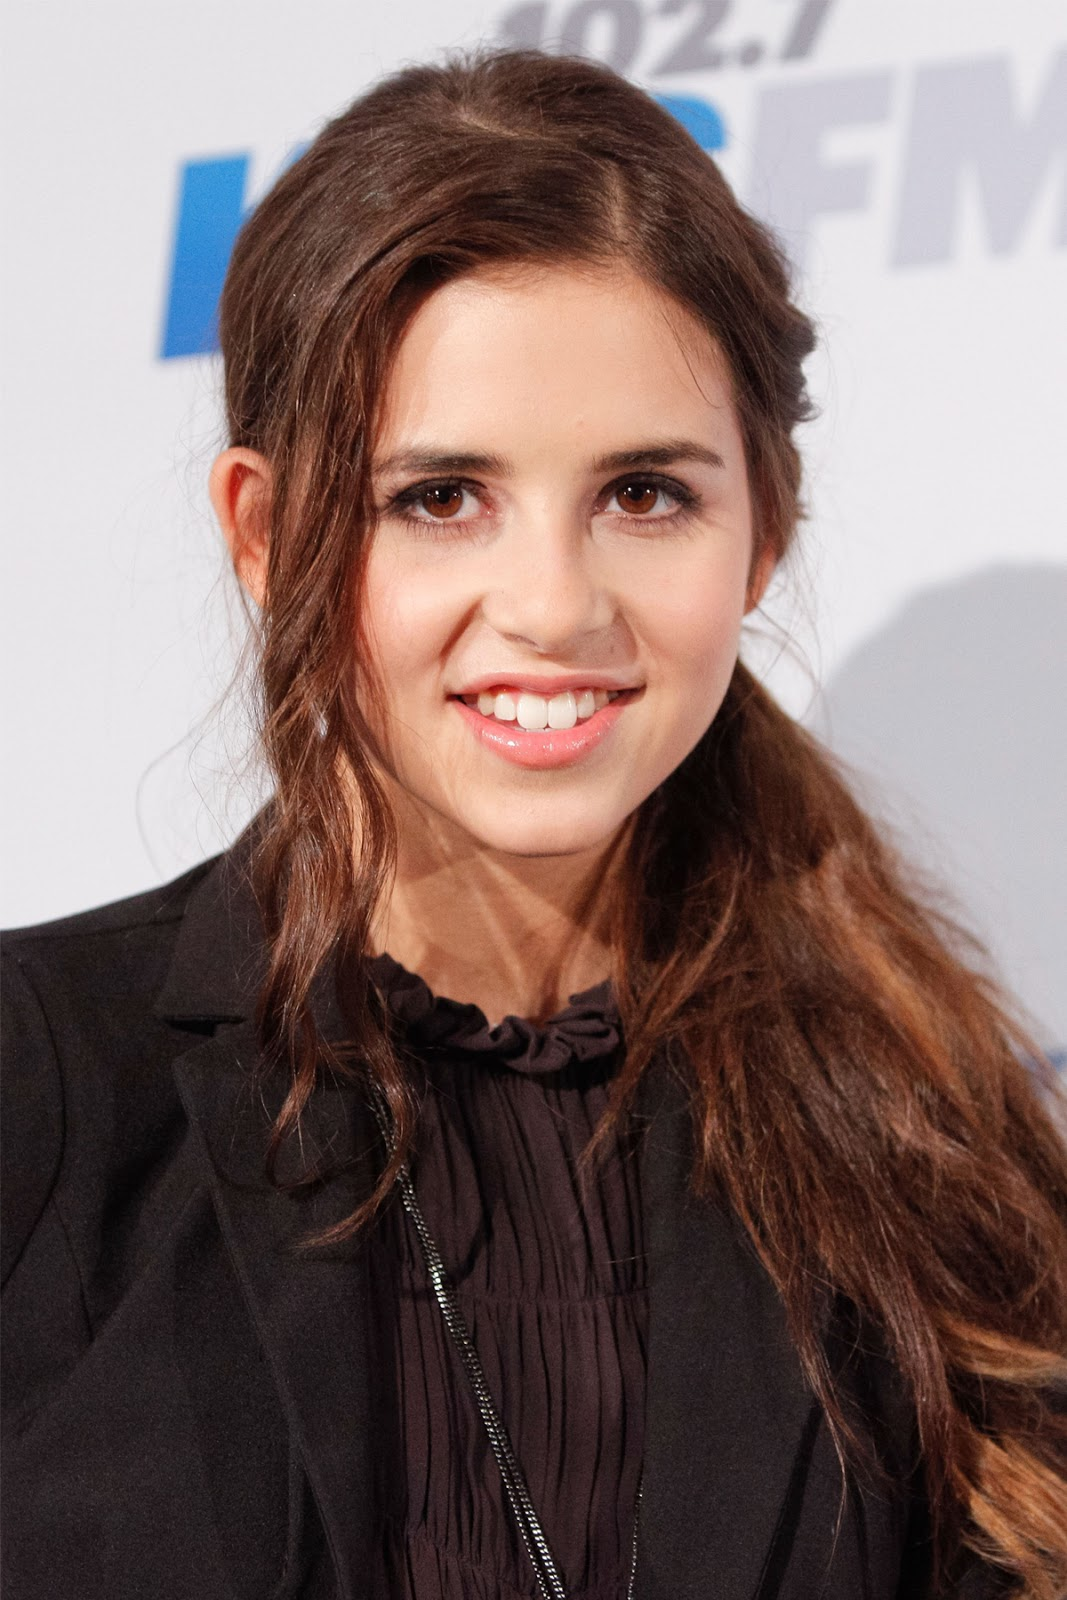 How Old Is Carly Rose Sonenclar